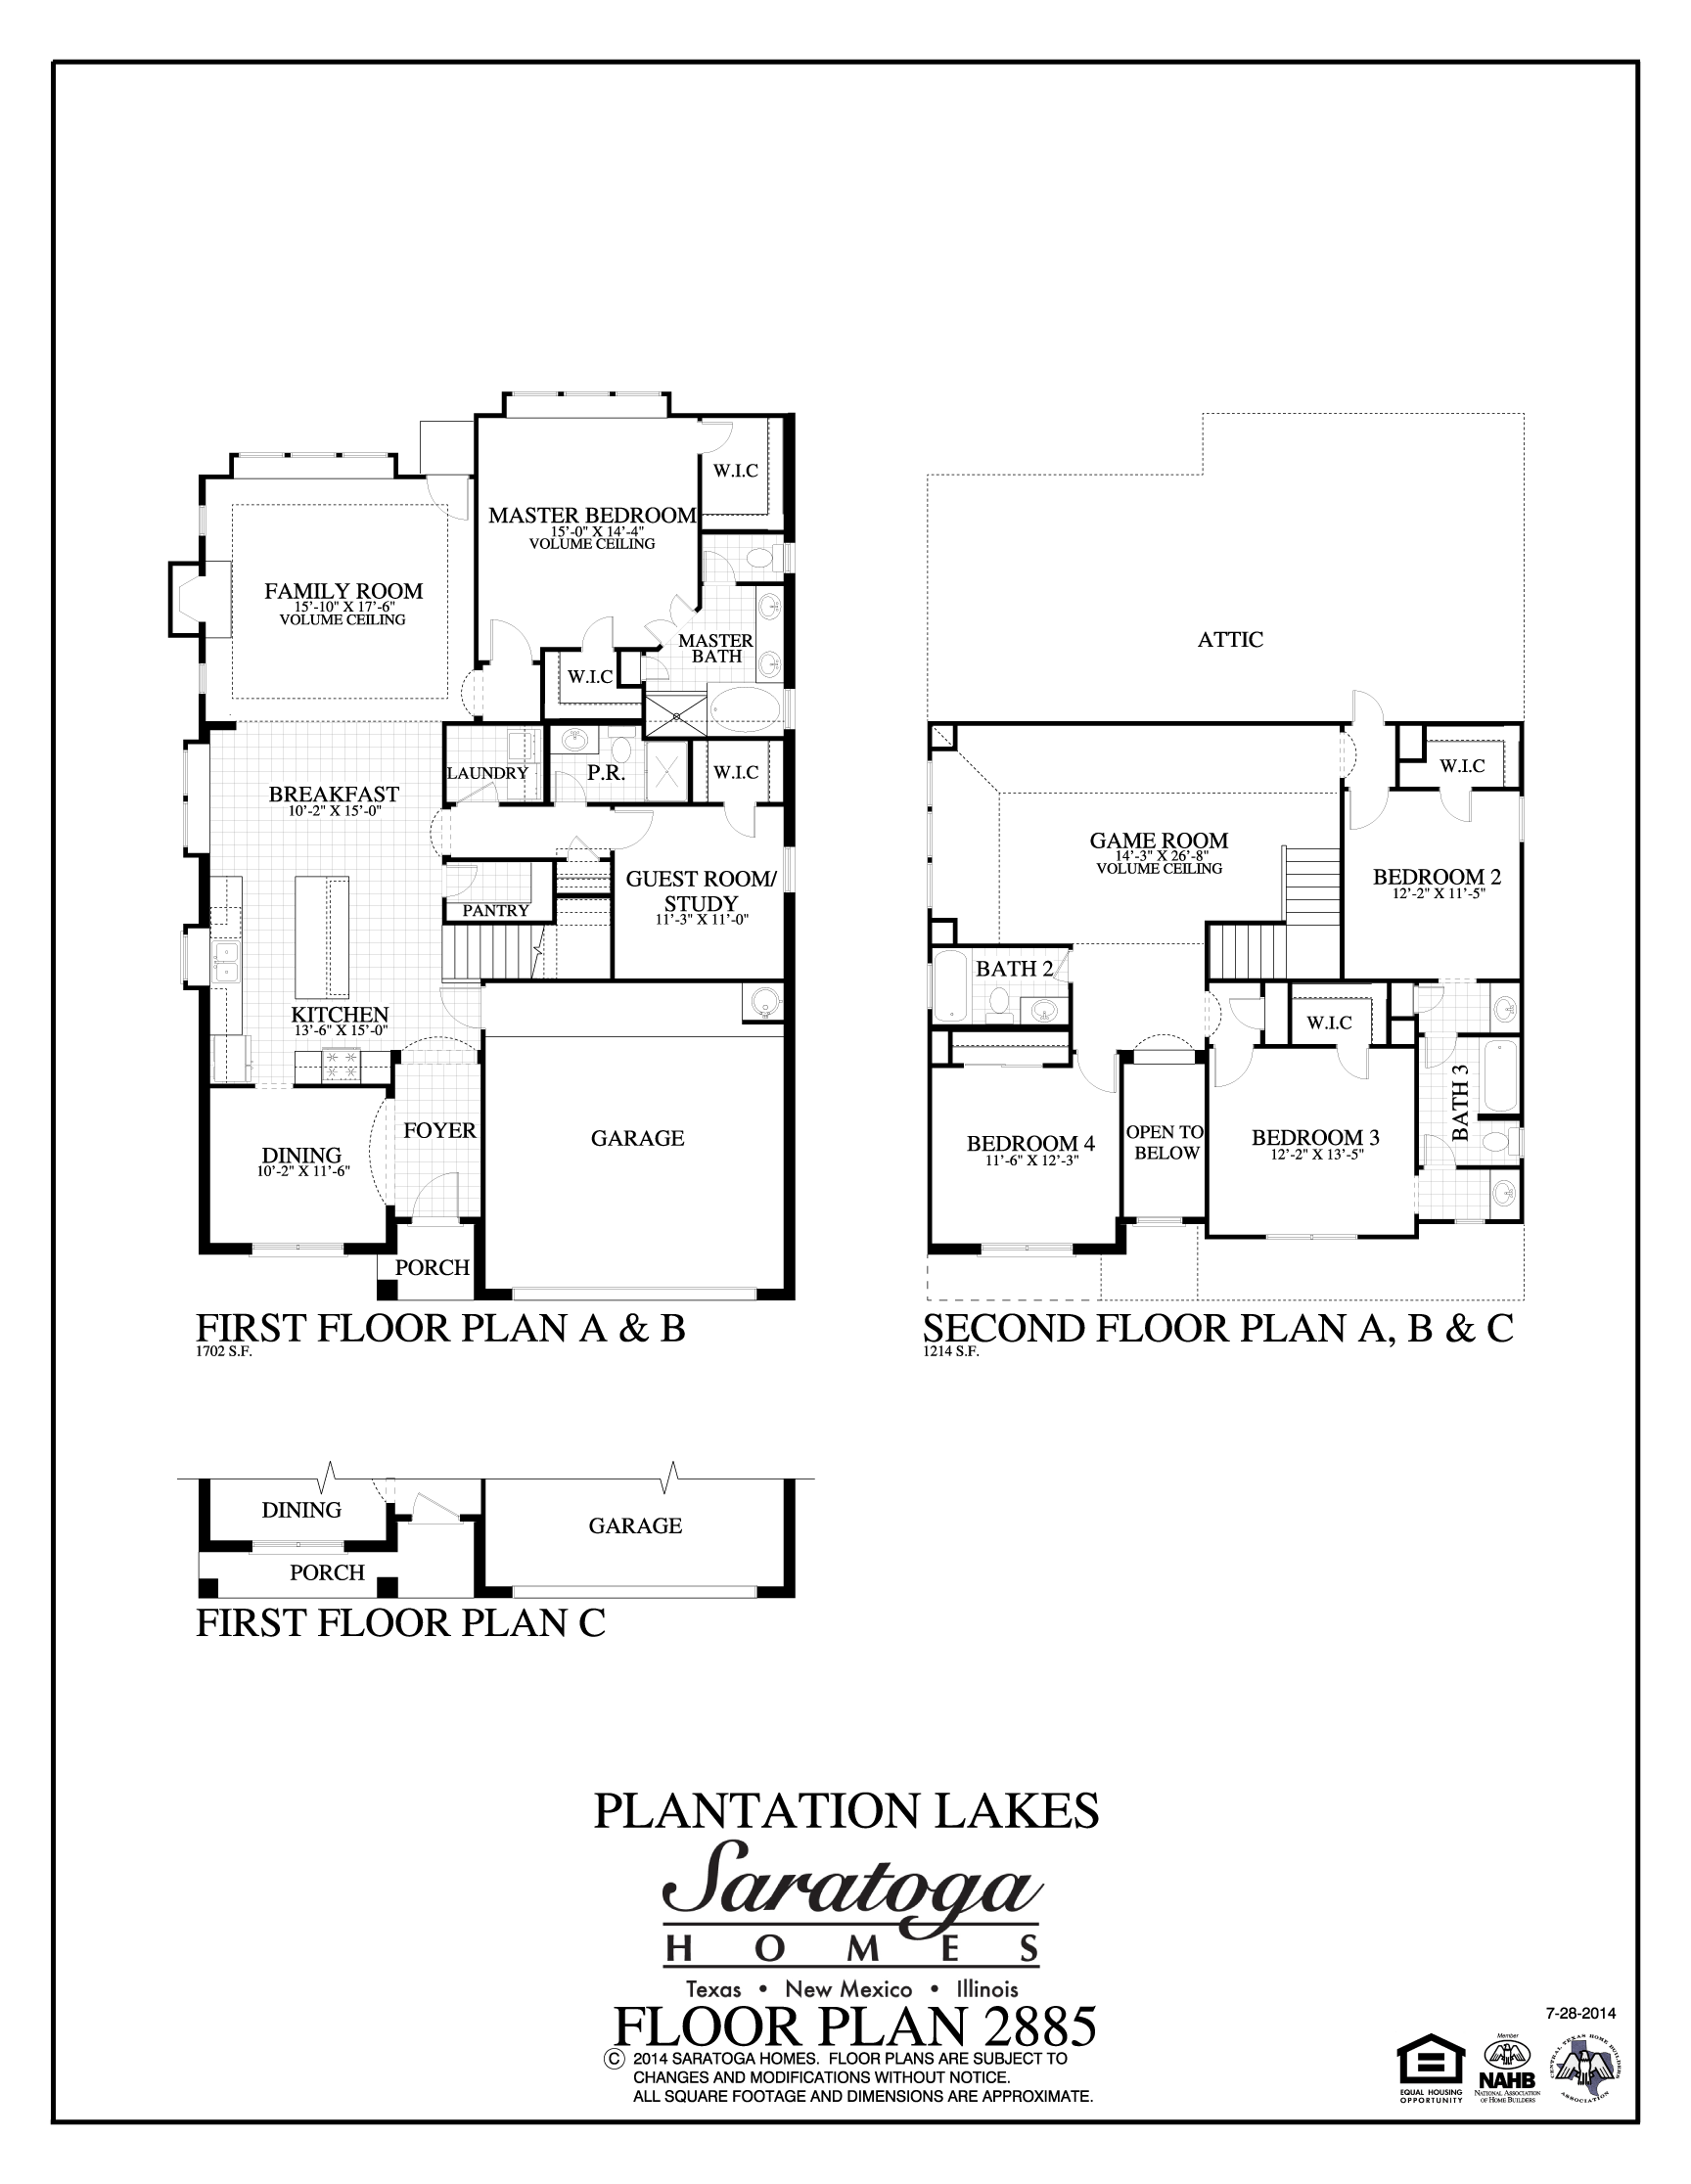 Us Homes Floor Plans Plan 2885 Saratoga Homes Houston